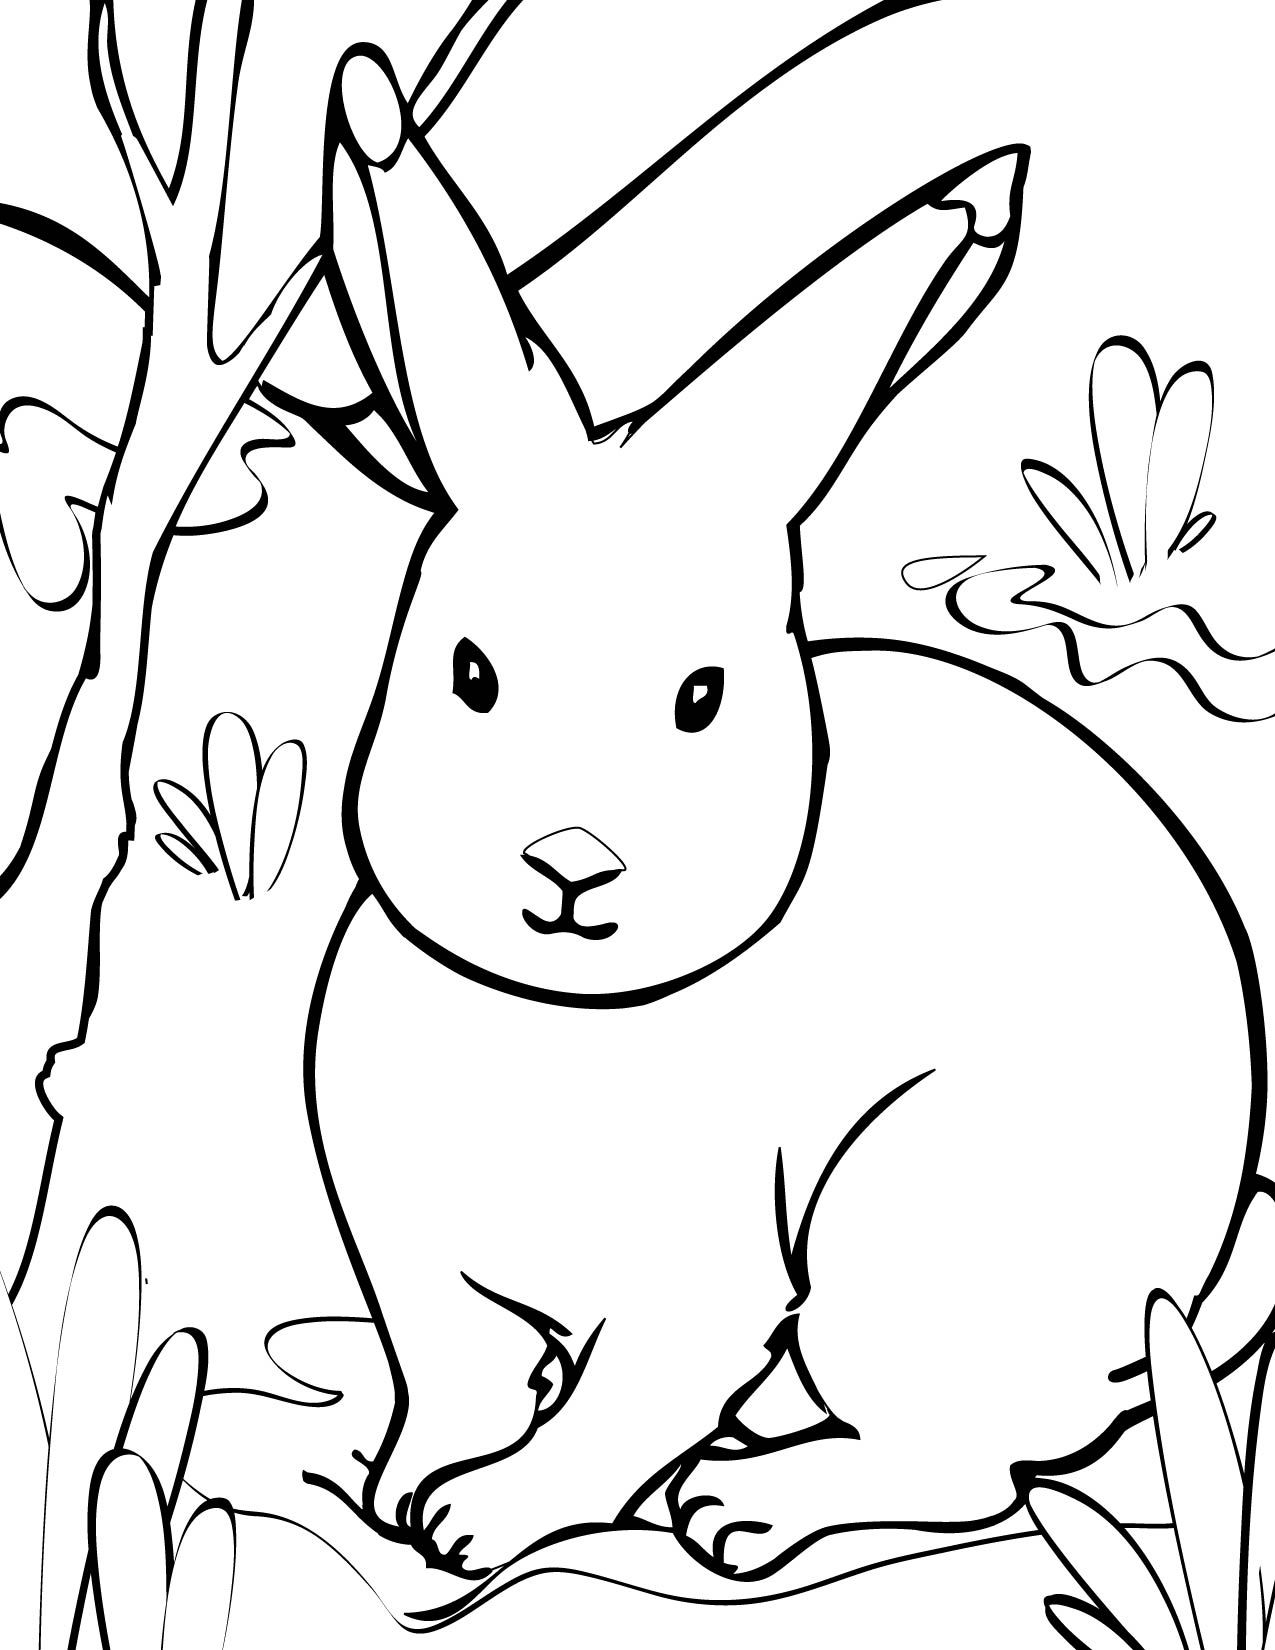 animal coloring pages print this page arctic animals coloring pages coloring pages - Animal Pictures To Color And Print